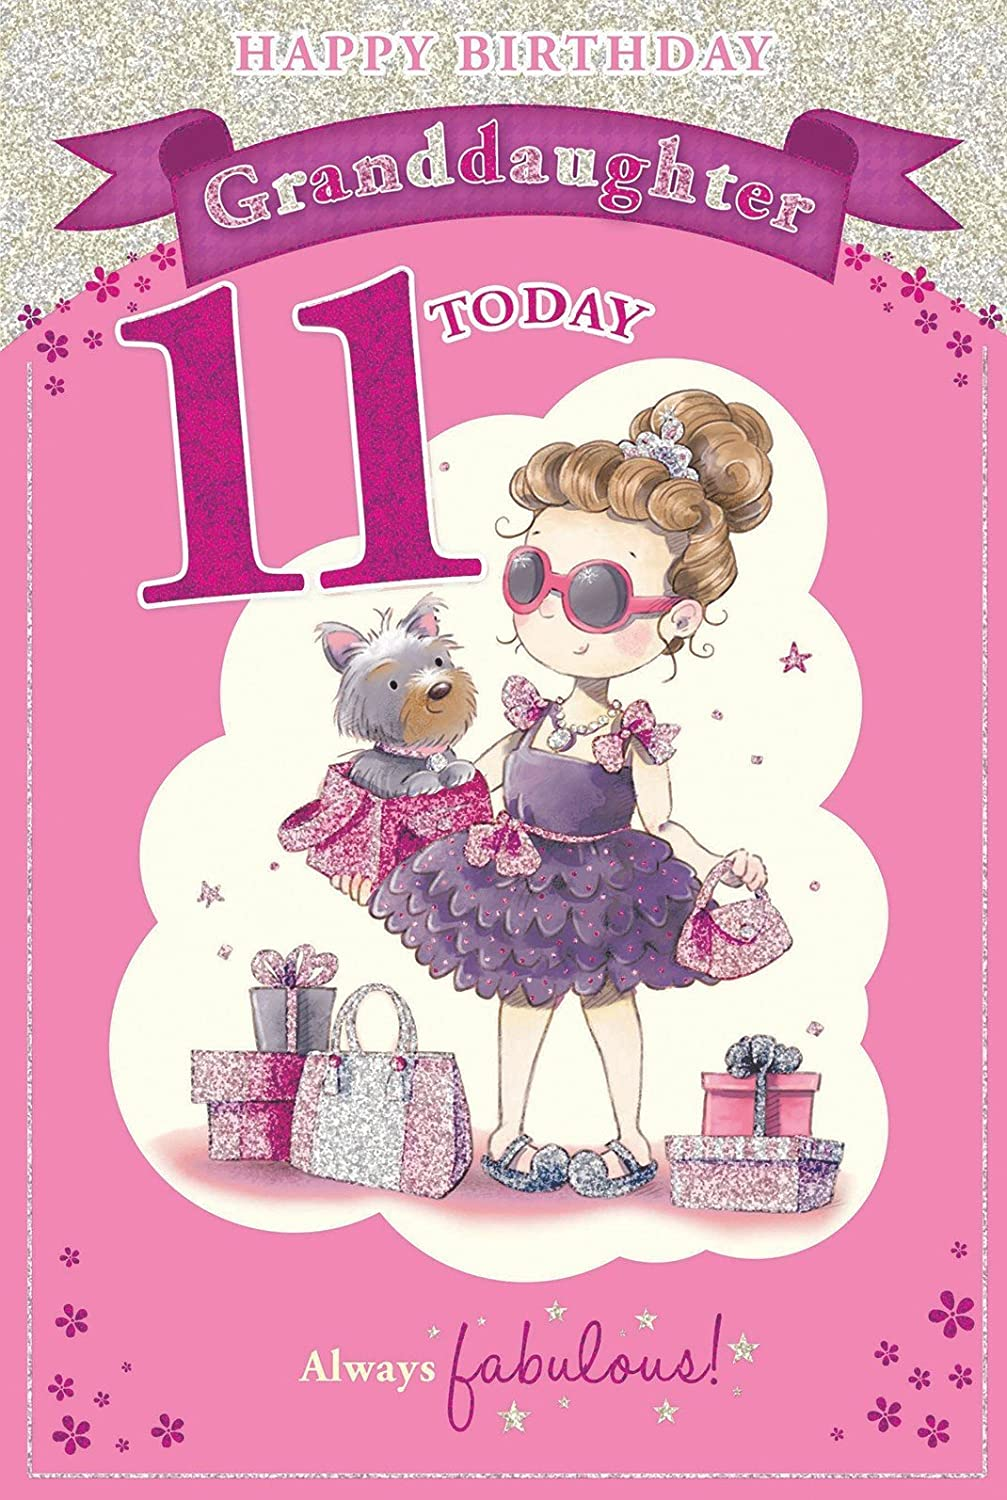 Granddaughters 11th Birthday Card 11 Today Girl Dog With – 11th Birthday Cards